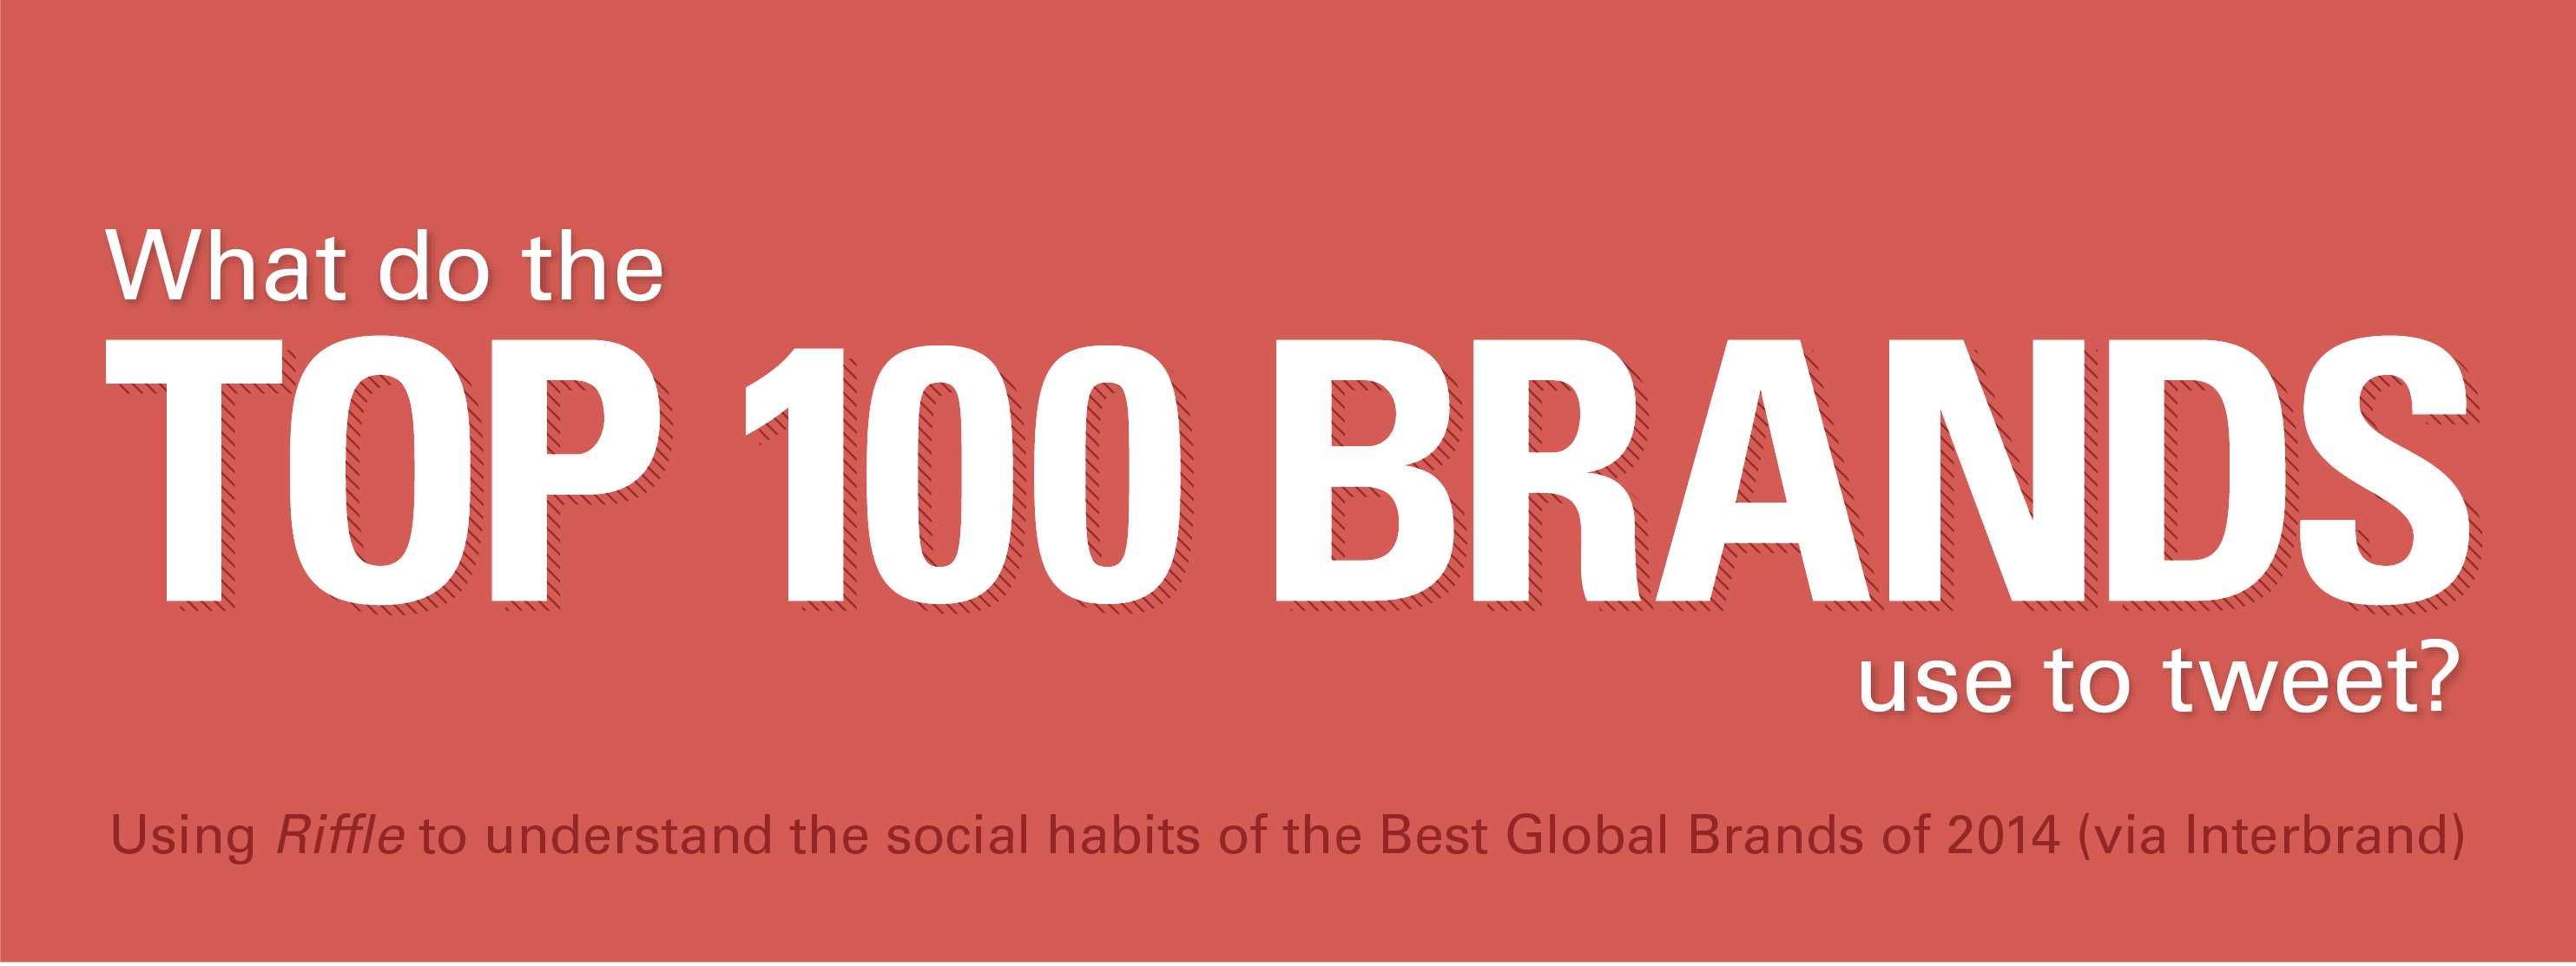 Top 100 Brands Header Image-02-02